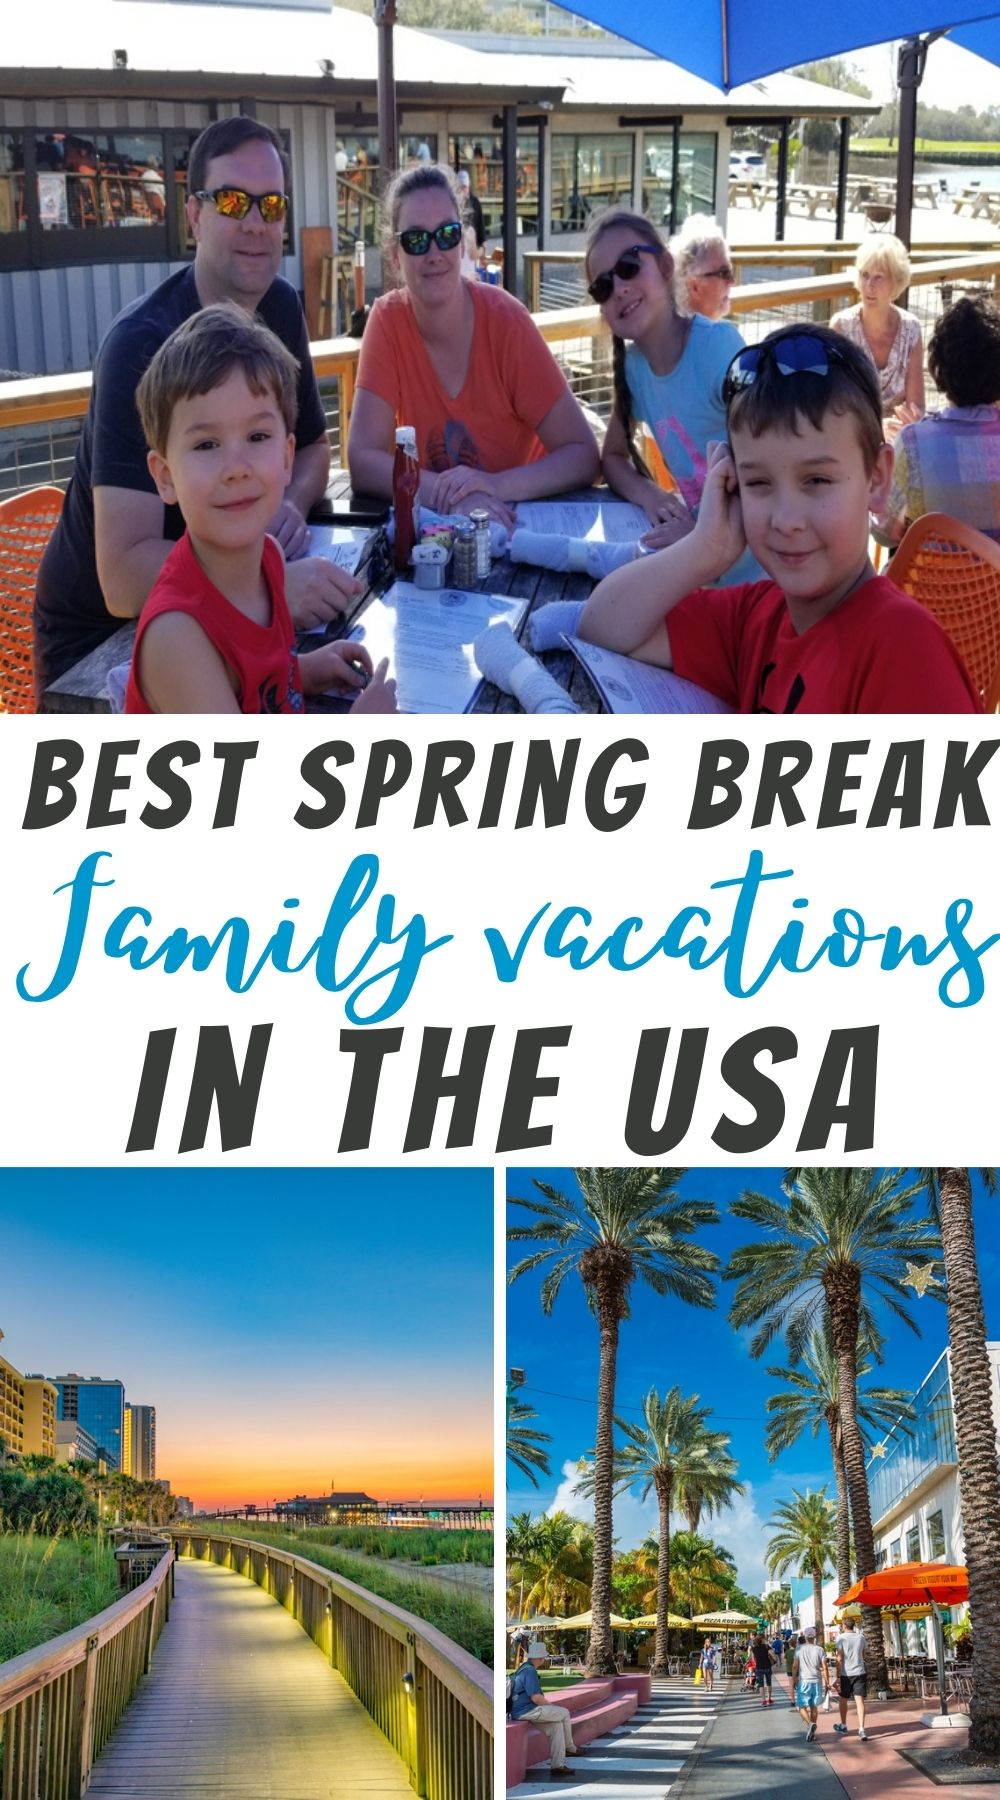 best spring break vacations in the usa